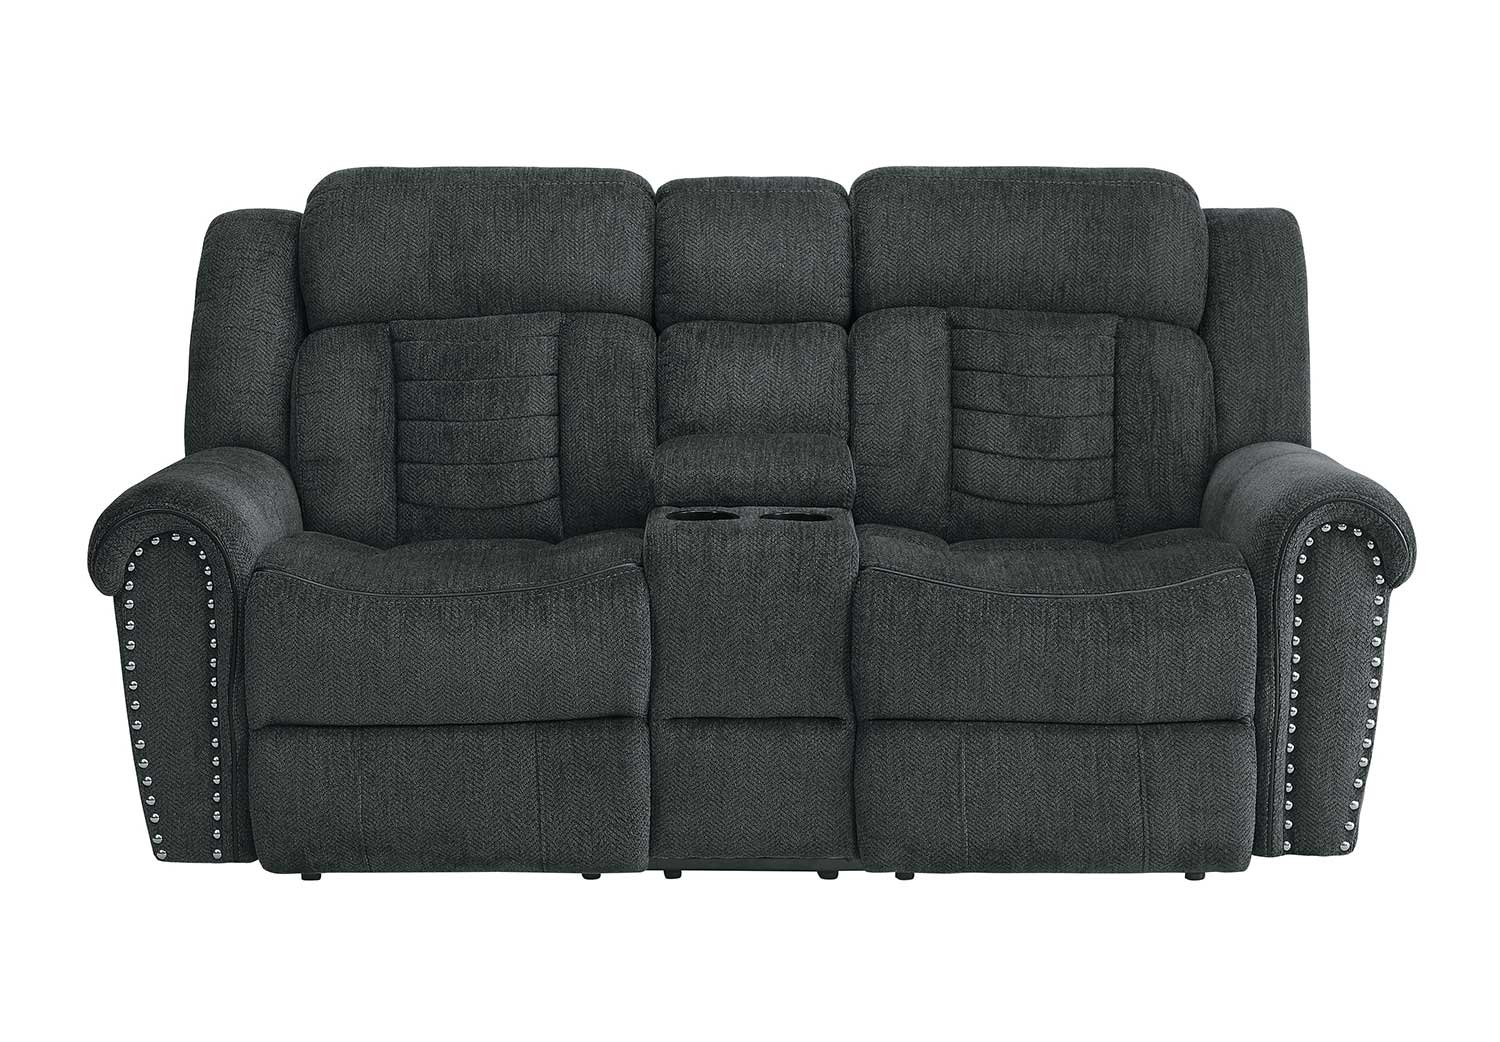 Homelegance Nutmeg Double Reclining Love Seat With Center Console - Charcoal Gray